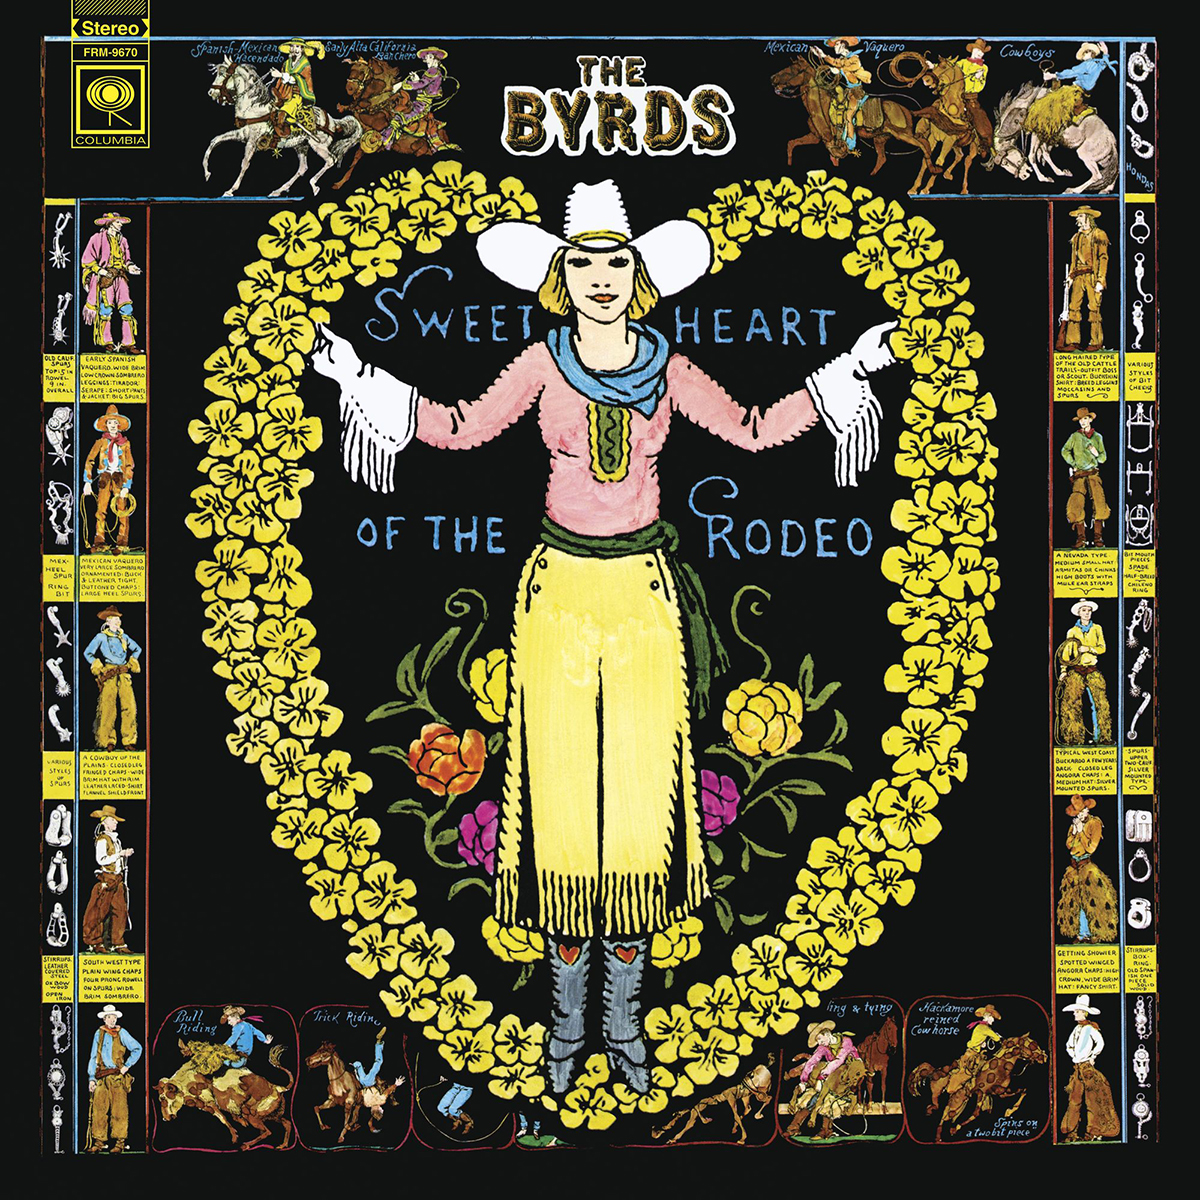 THE BYRDS - SWEETHEART OF THE RODEO (180 GRAM TRANSLUCENT BLUE & GREEN SWIRL LP